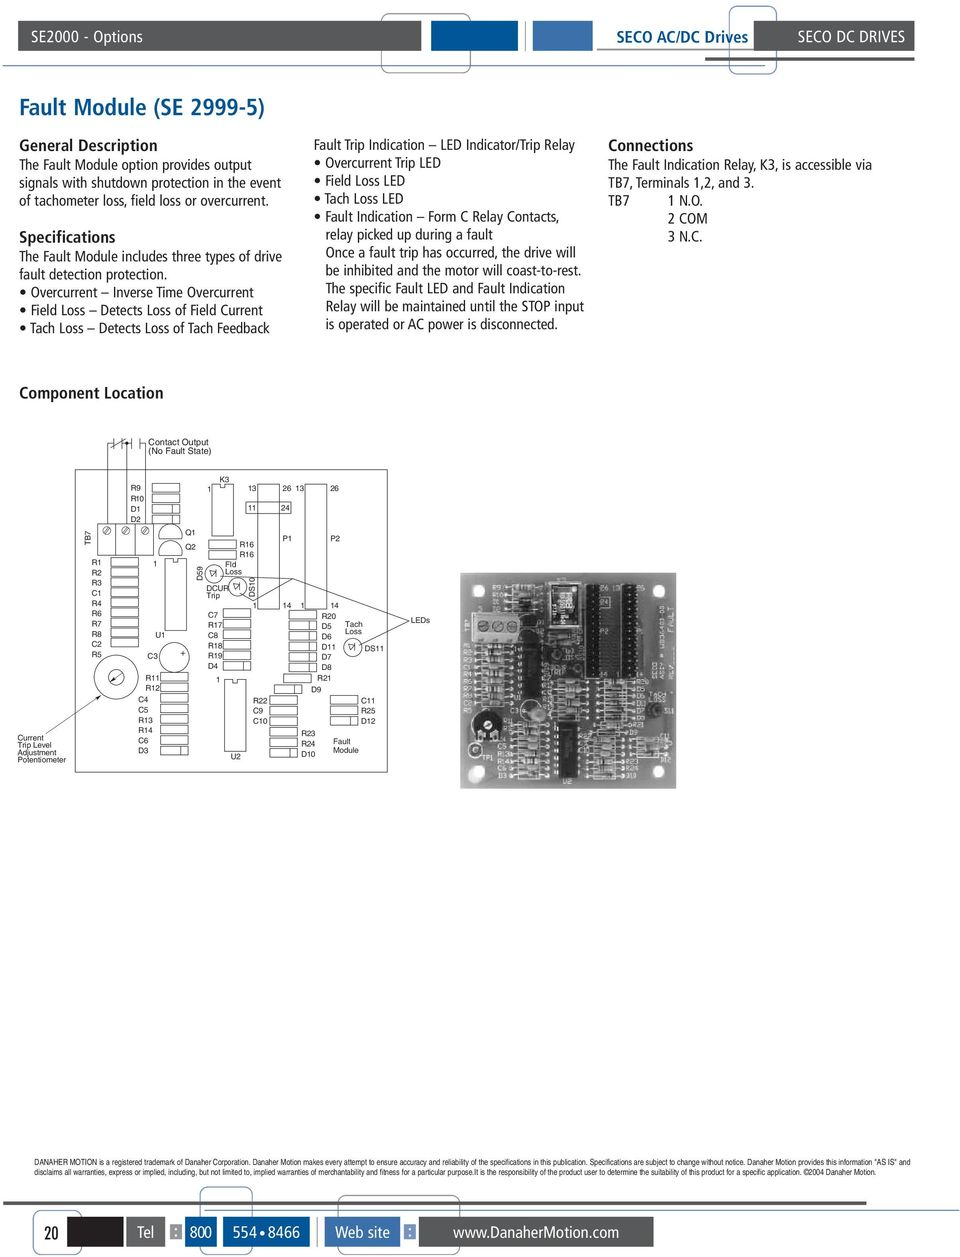 August Seco Dc Drives Table Of Contents Pdf Forward And Reverse Operation The Dynamic Braking Circuit 2 Overcurrent Inverse Time Field Loss Detects Current Tach